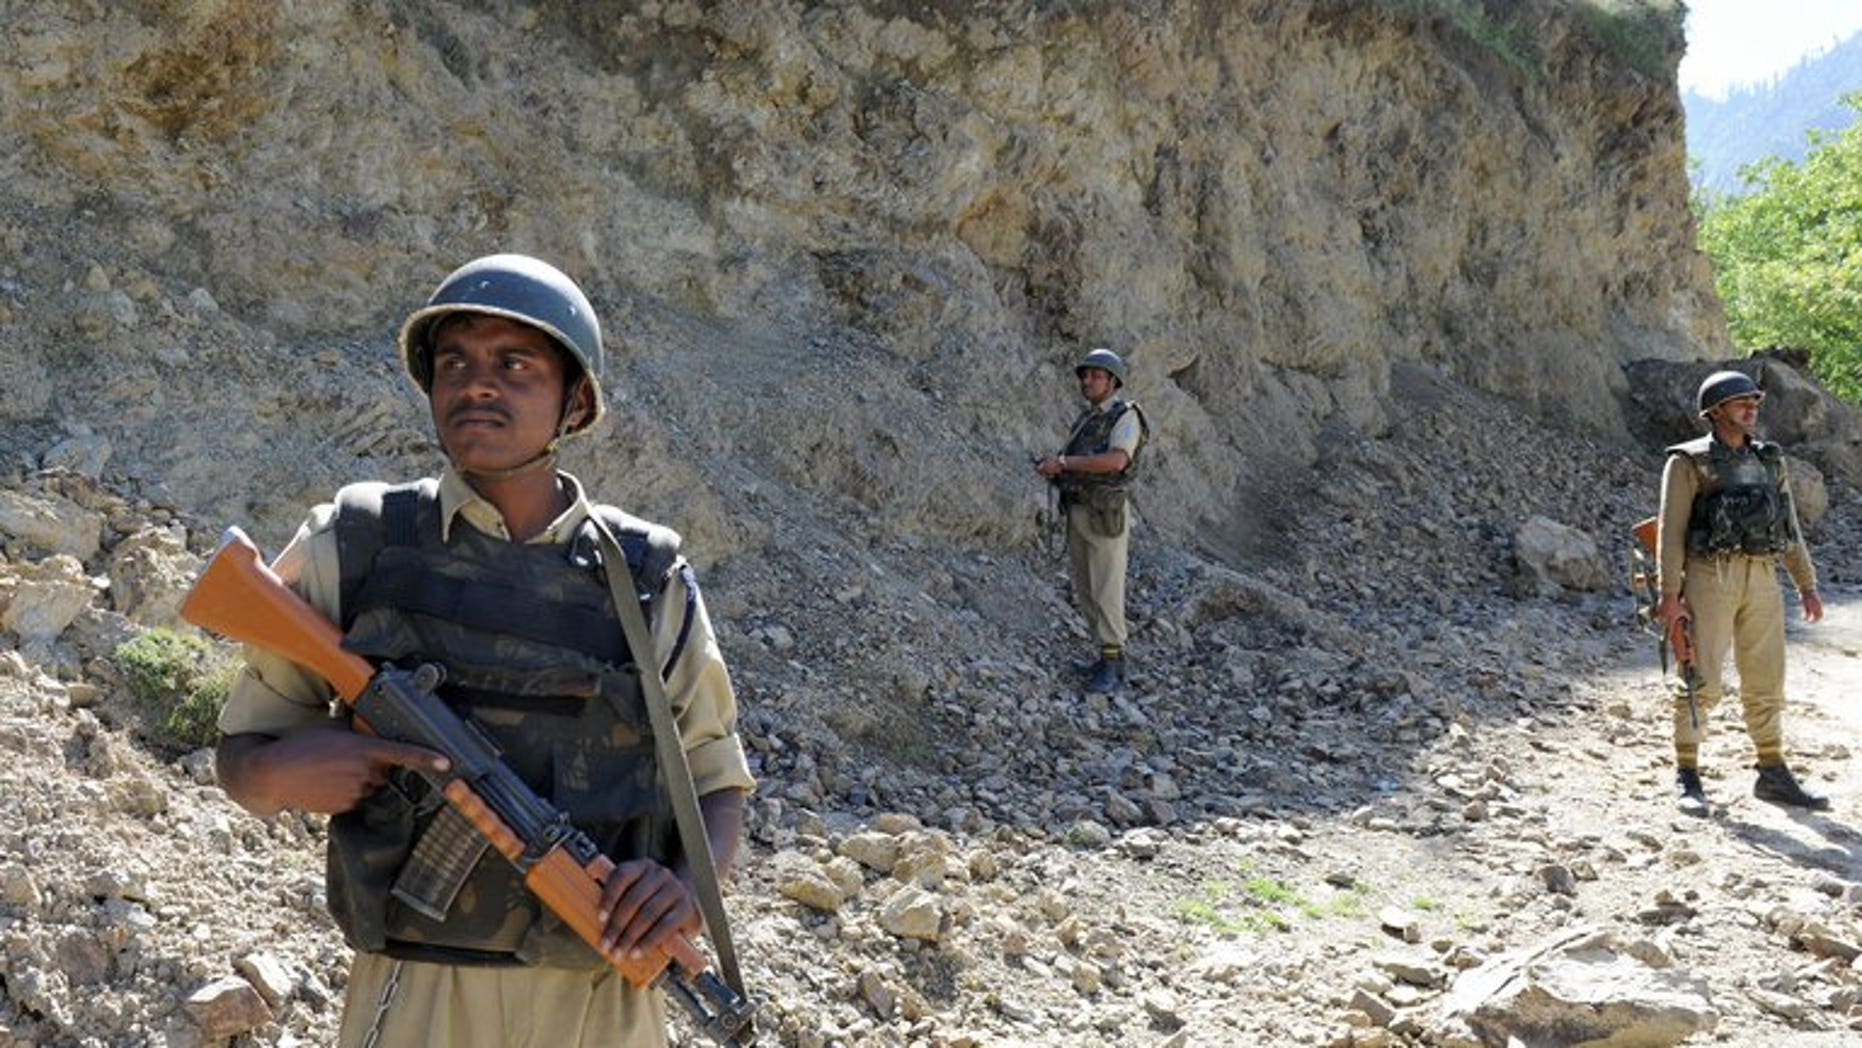 """Indian security forces stand guard near the Line of Control (LOC) on May 13, 2009. India's army will take """"all possible steps"""" to counter any ceasefire violations by Pakistan along the border between the countries, the Indian defence minister said Monday, warning not to take New Delhi's restraint for granted."""